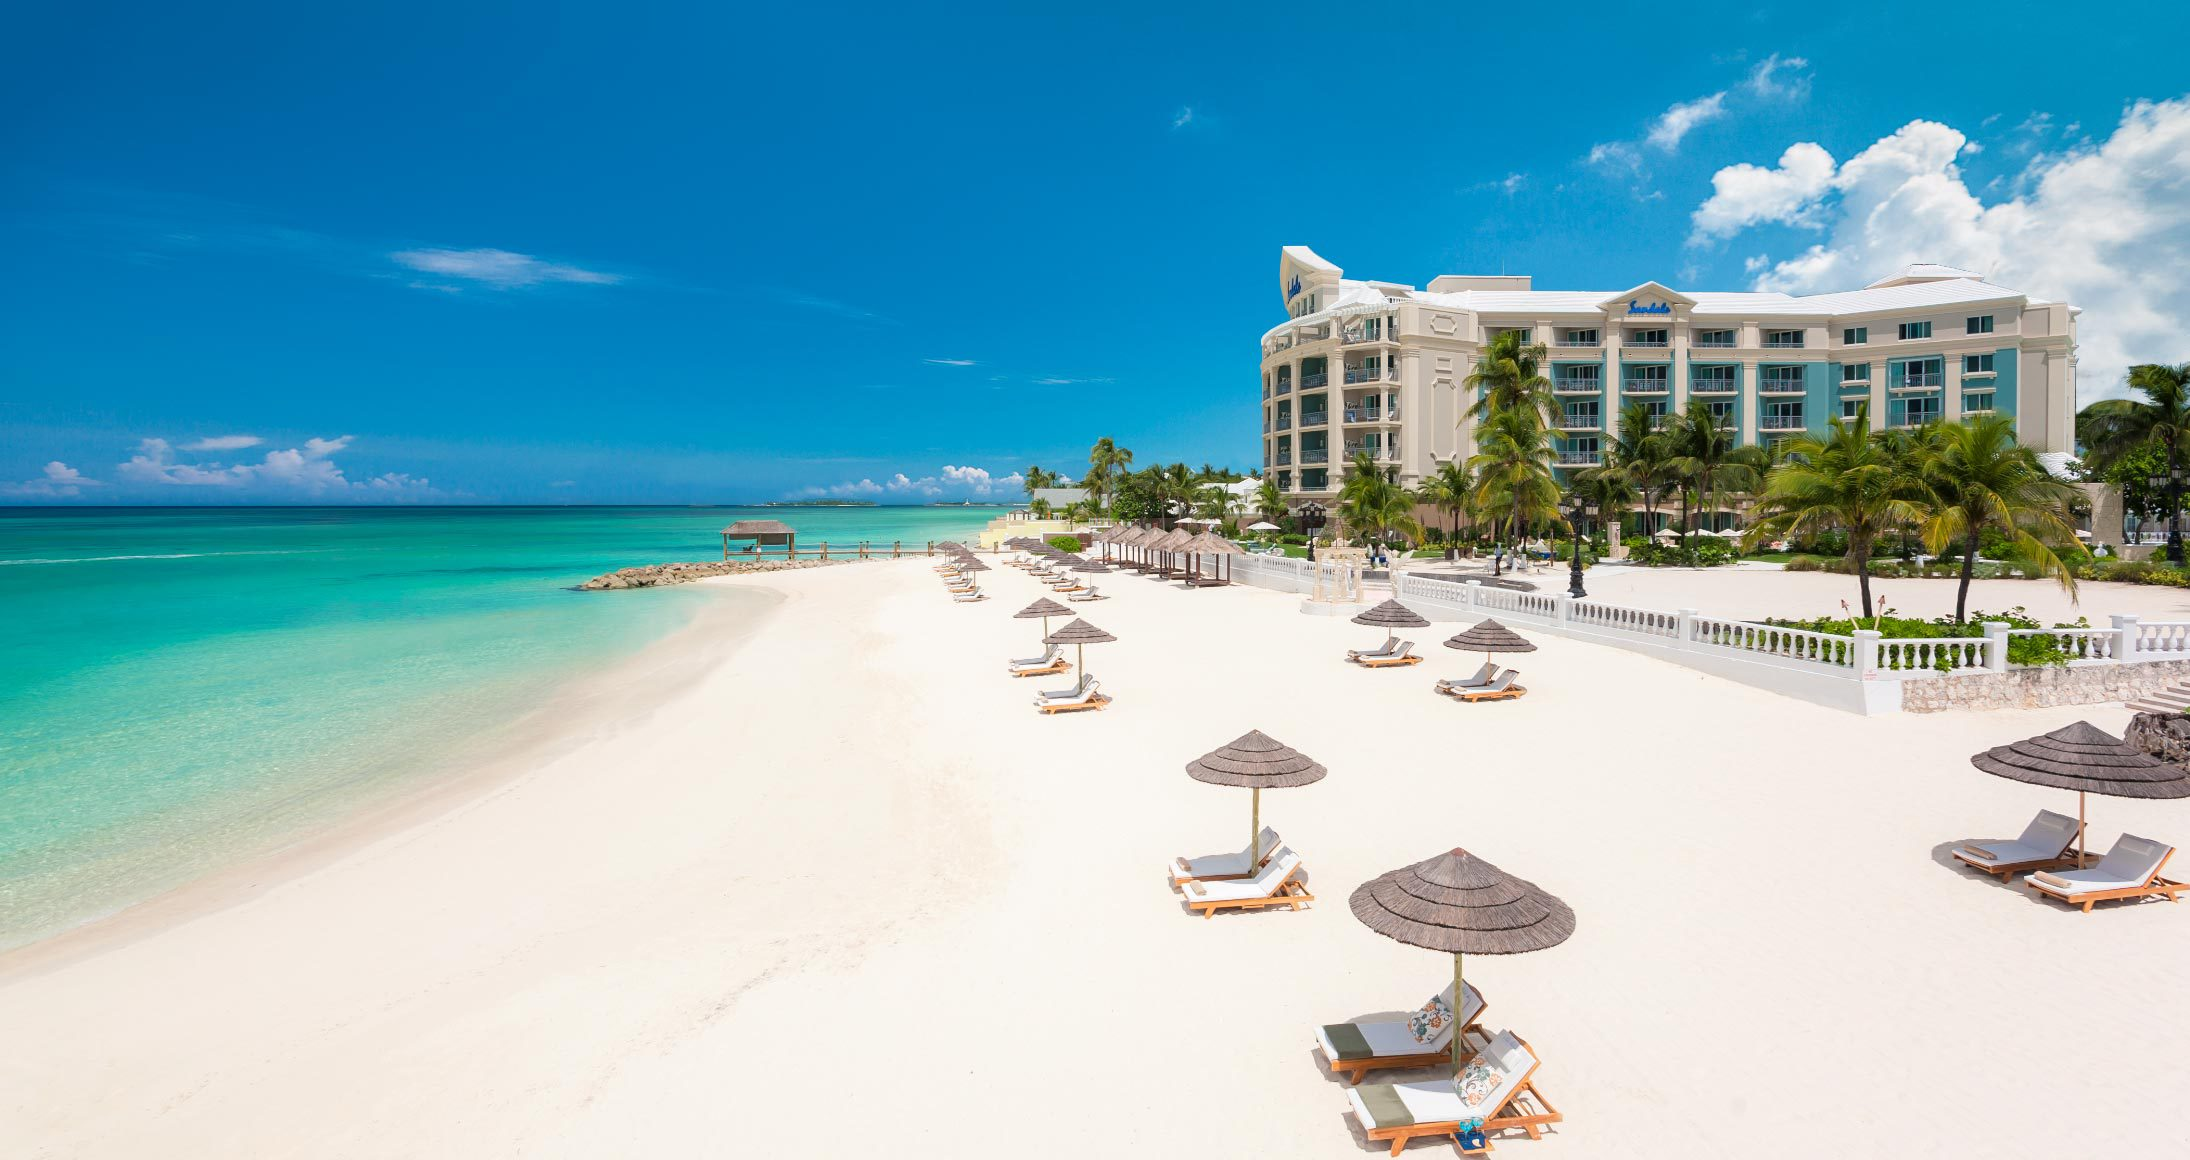 802d032e885596 Sandals Royal Bahamian - All-Inclusive Resort in Nassau